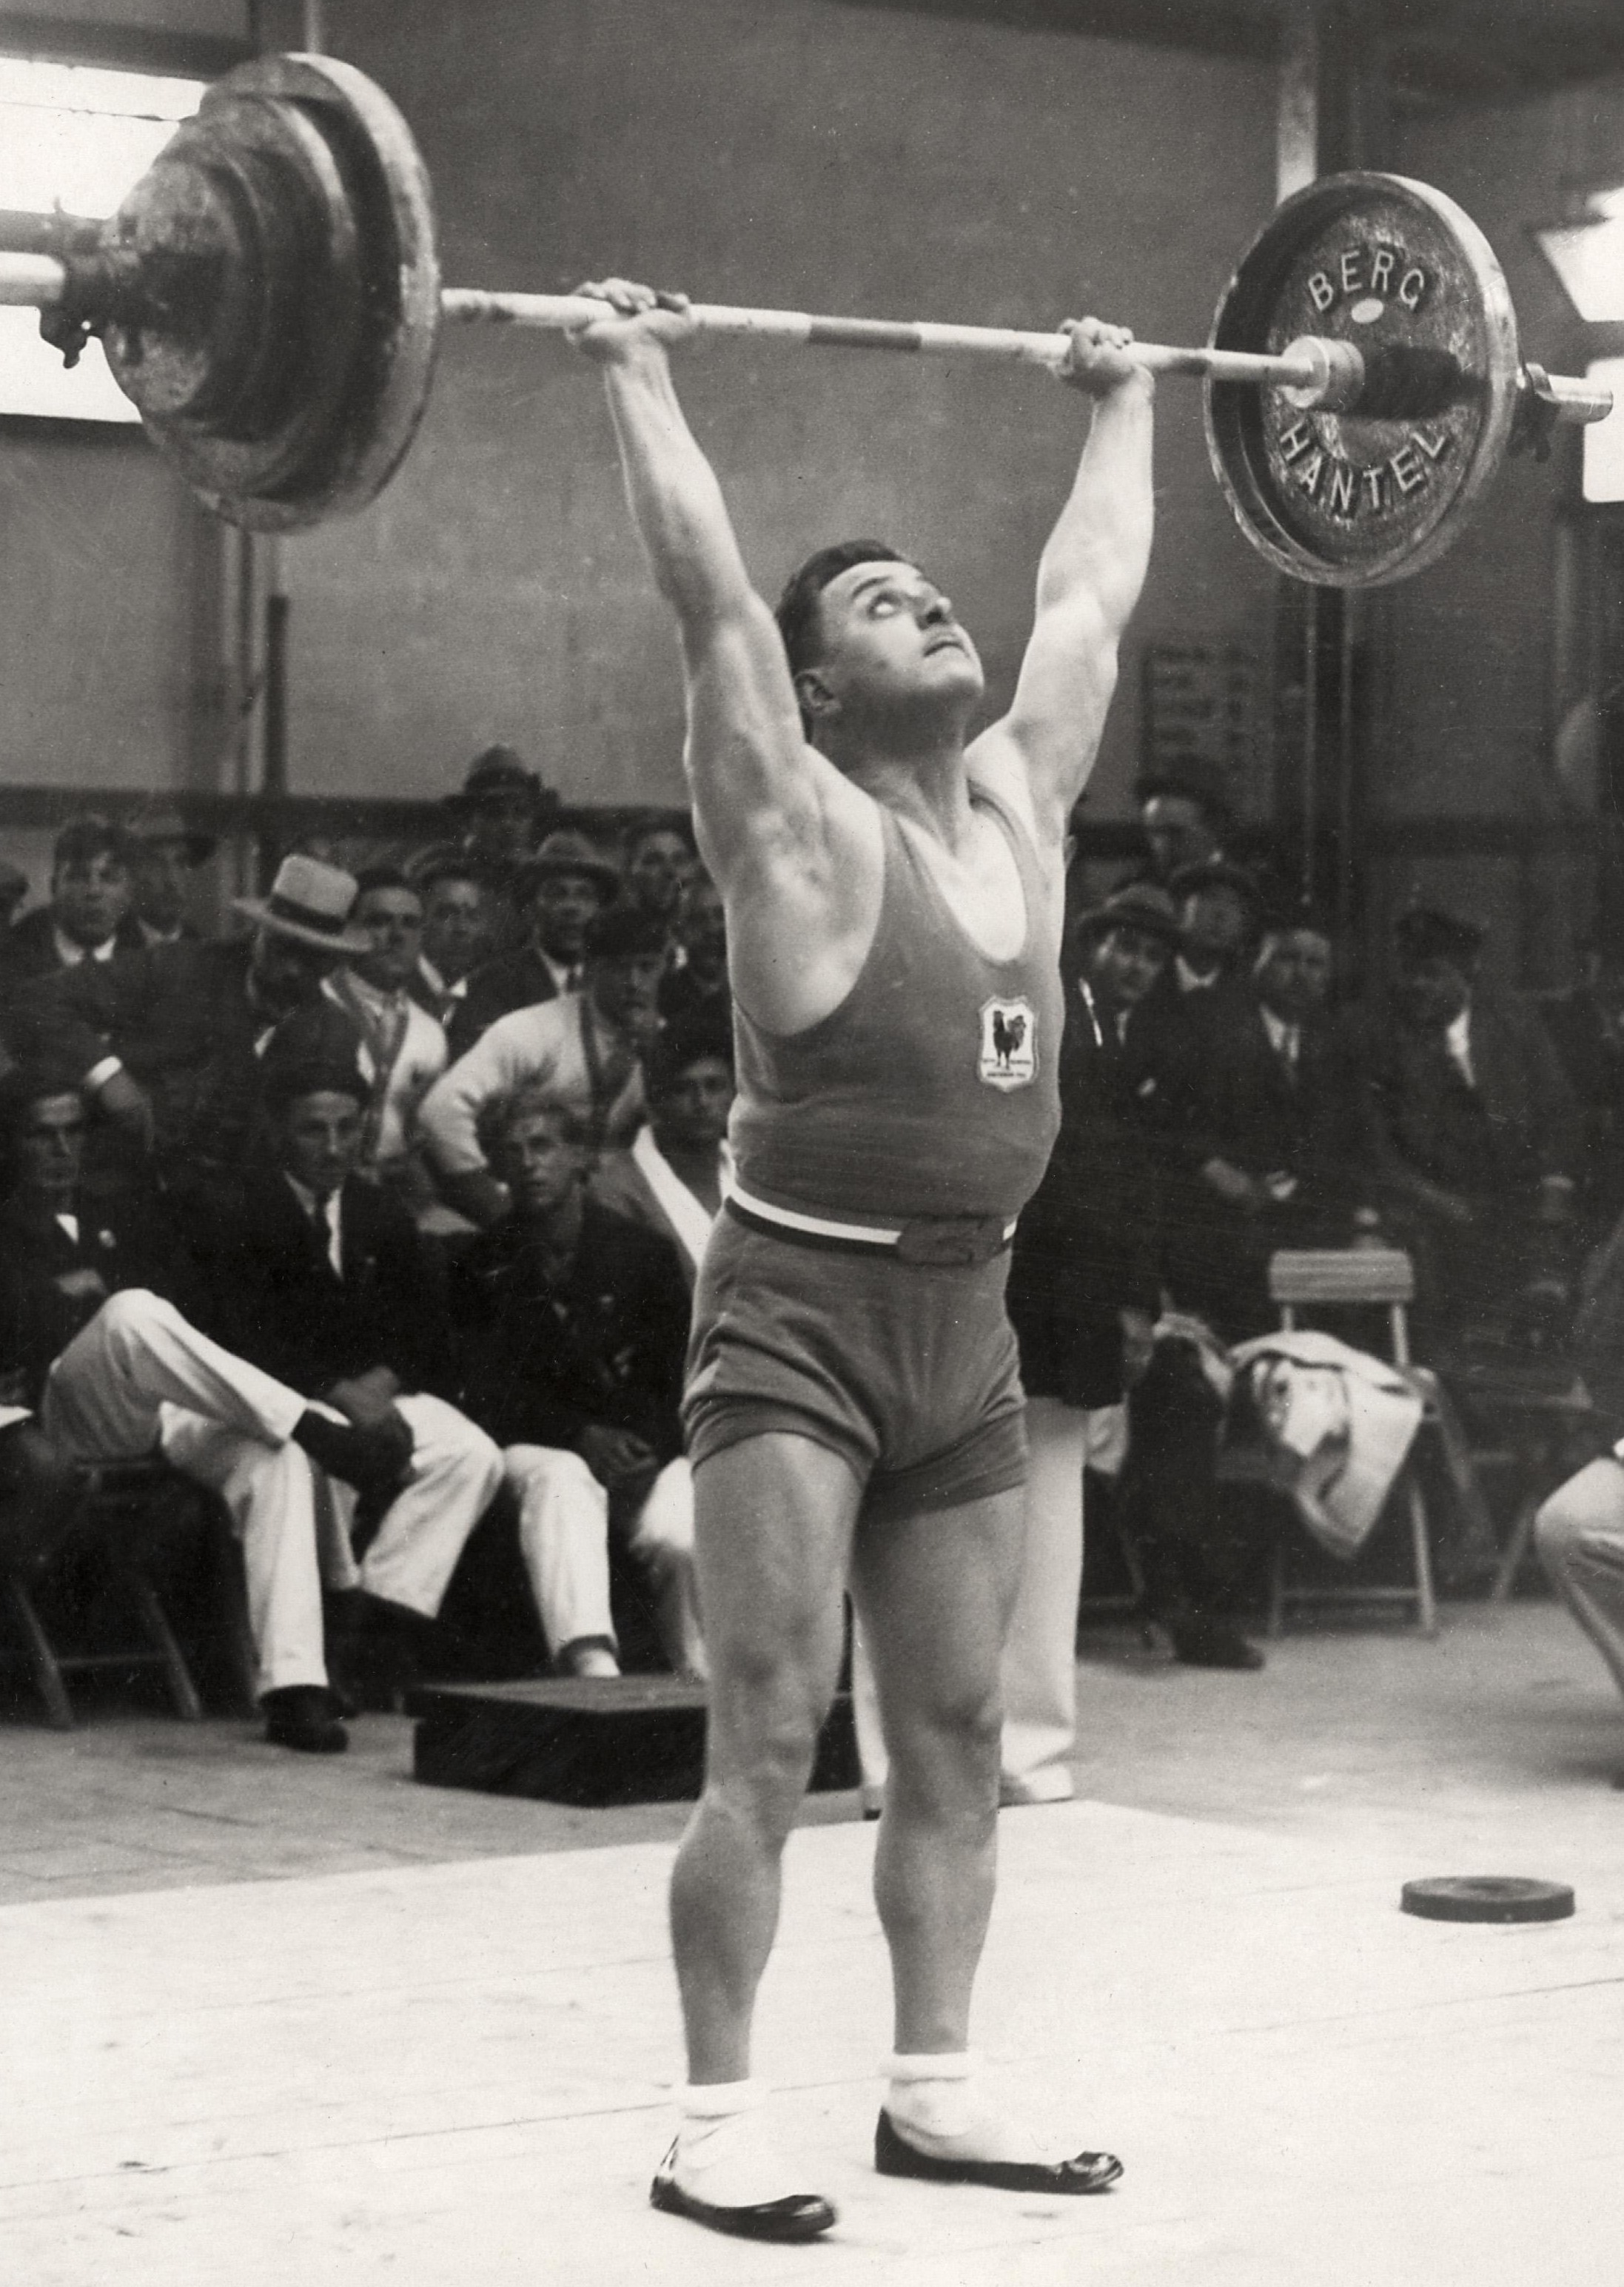 Roger François at the 1928 Olympics